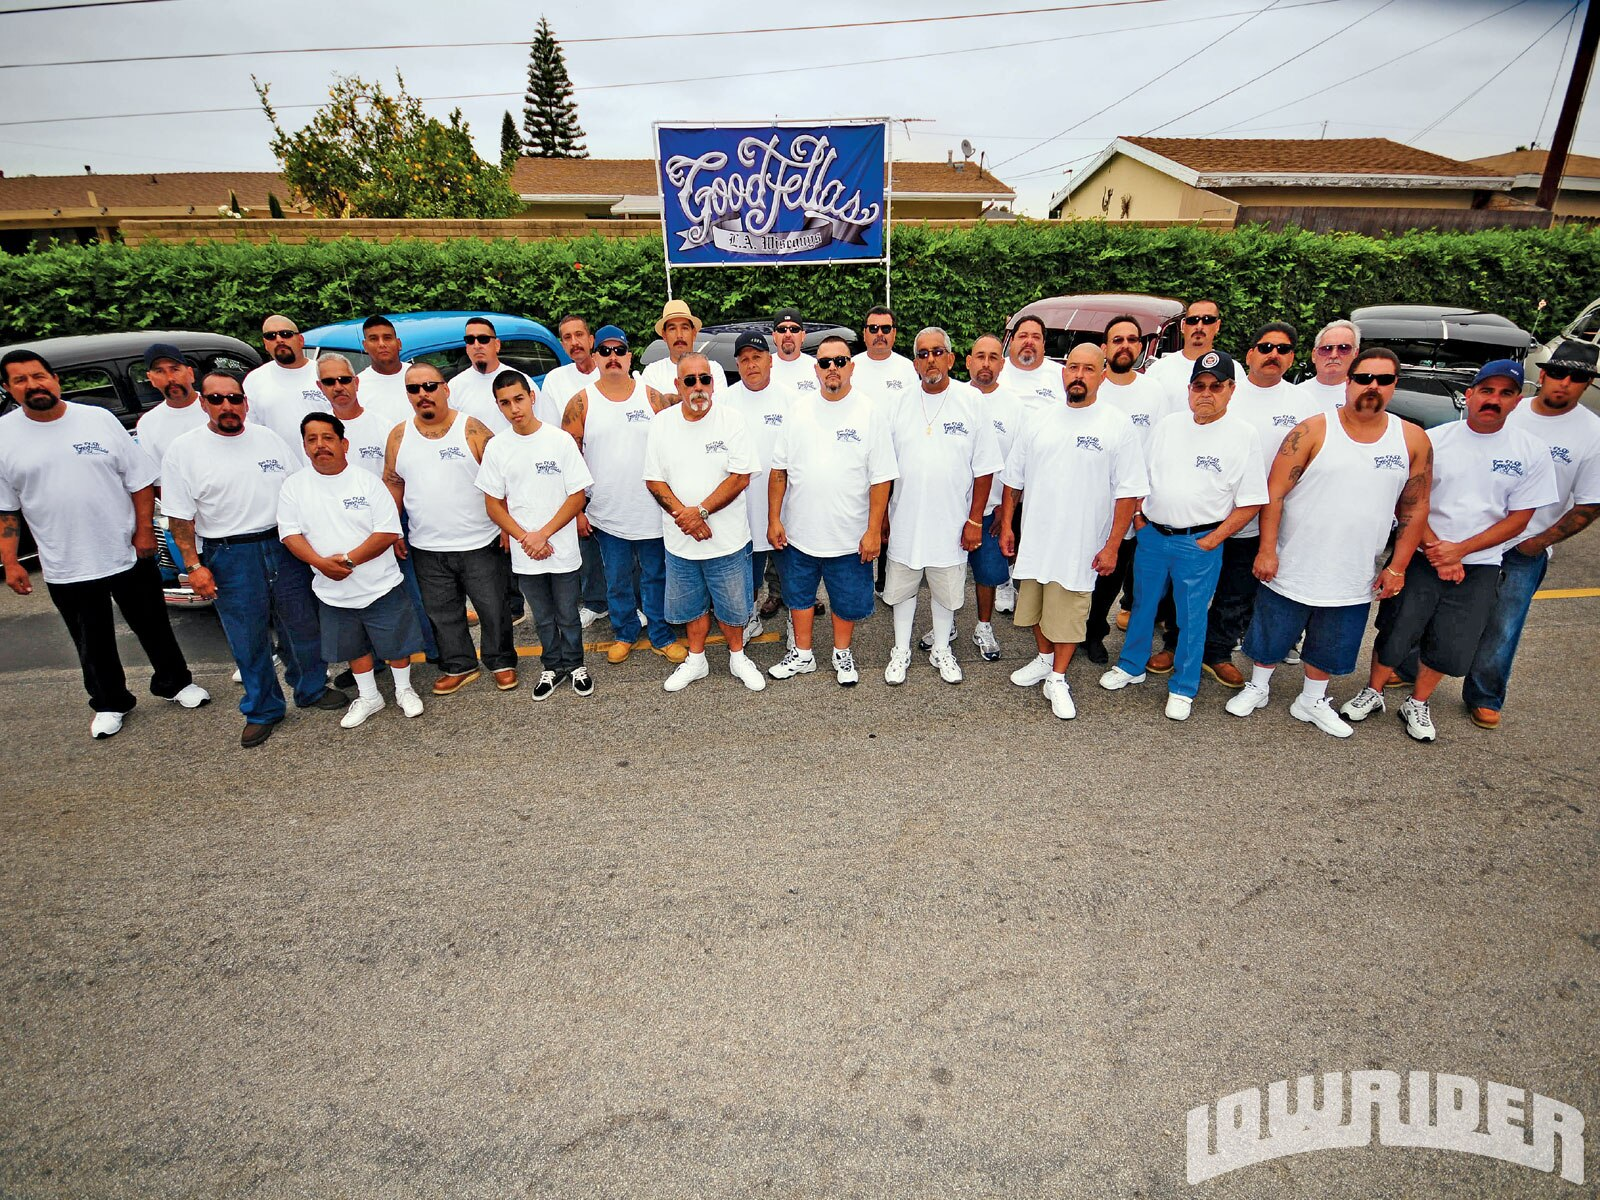 lrmp_1101_01_o-goodfellas-group_photo8